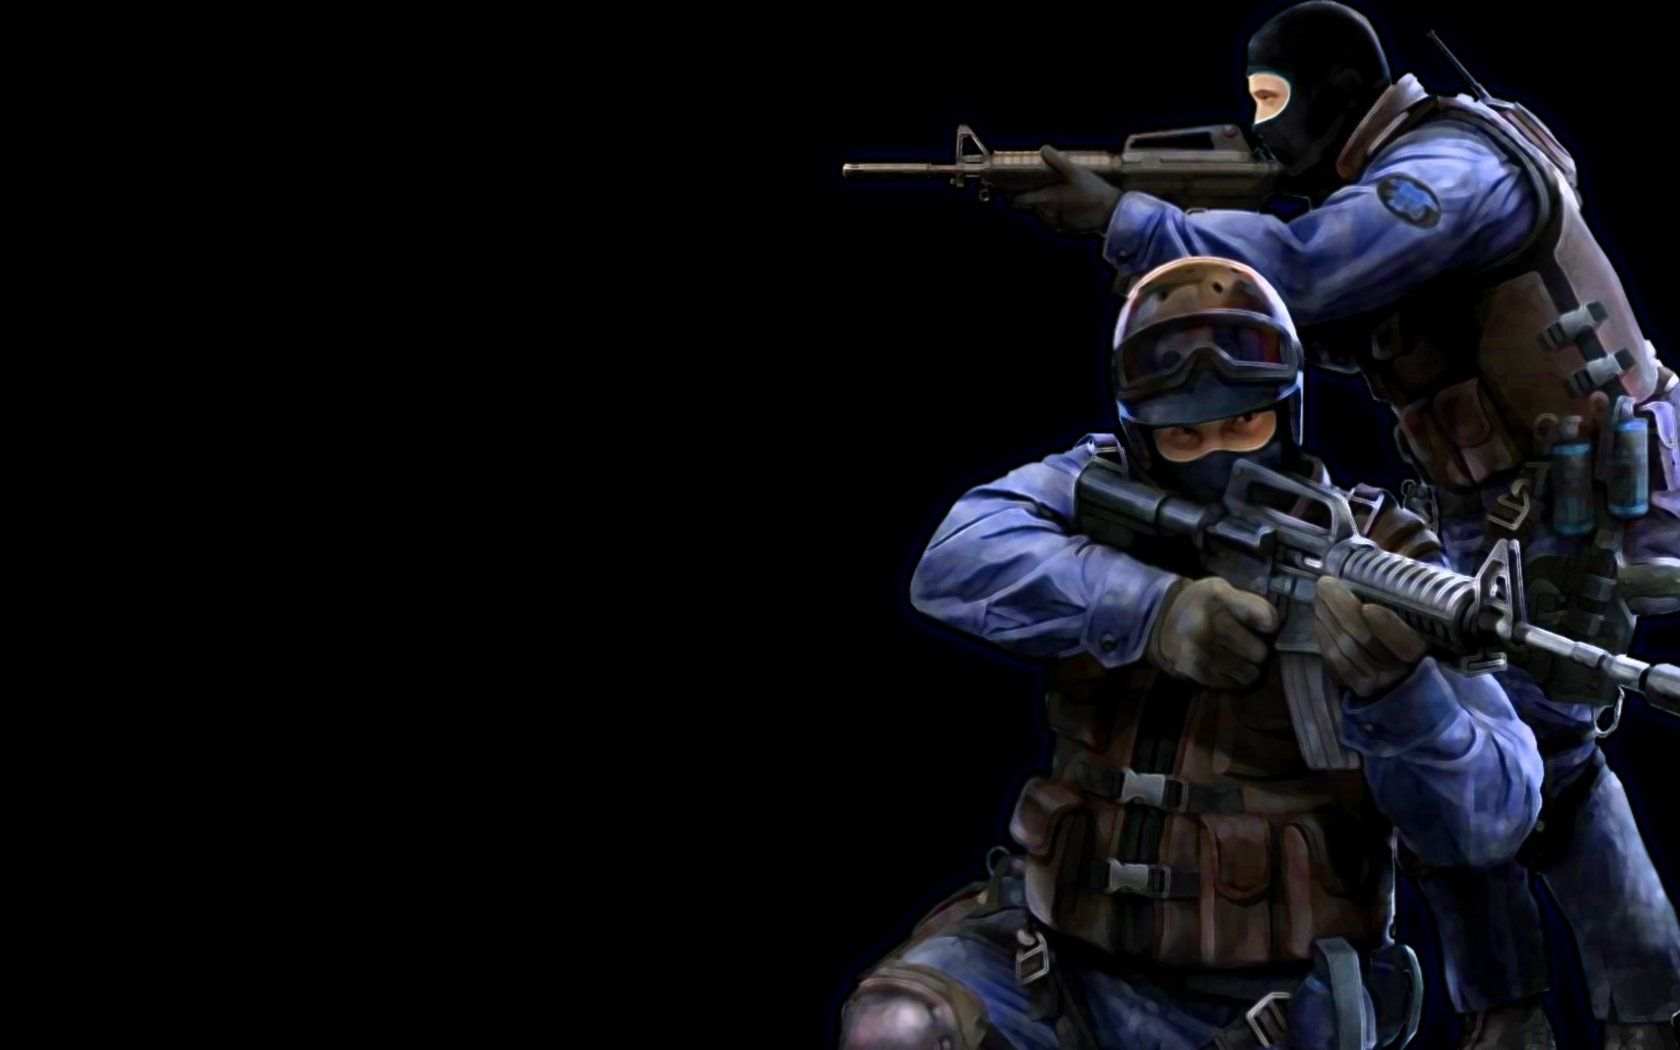 10 Best Hd Counter Strike Wallpapers Full Hd 1920 1080 For Pc Background Counter Strike Source Strike Go Wallpaper